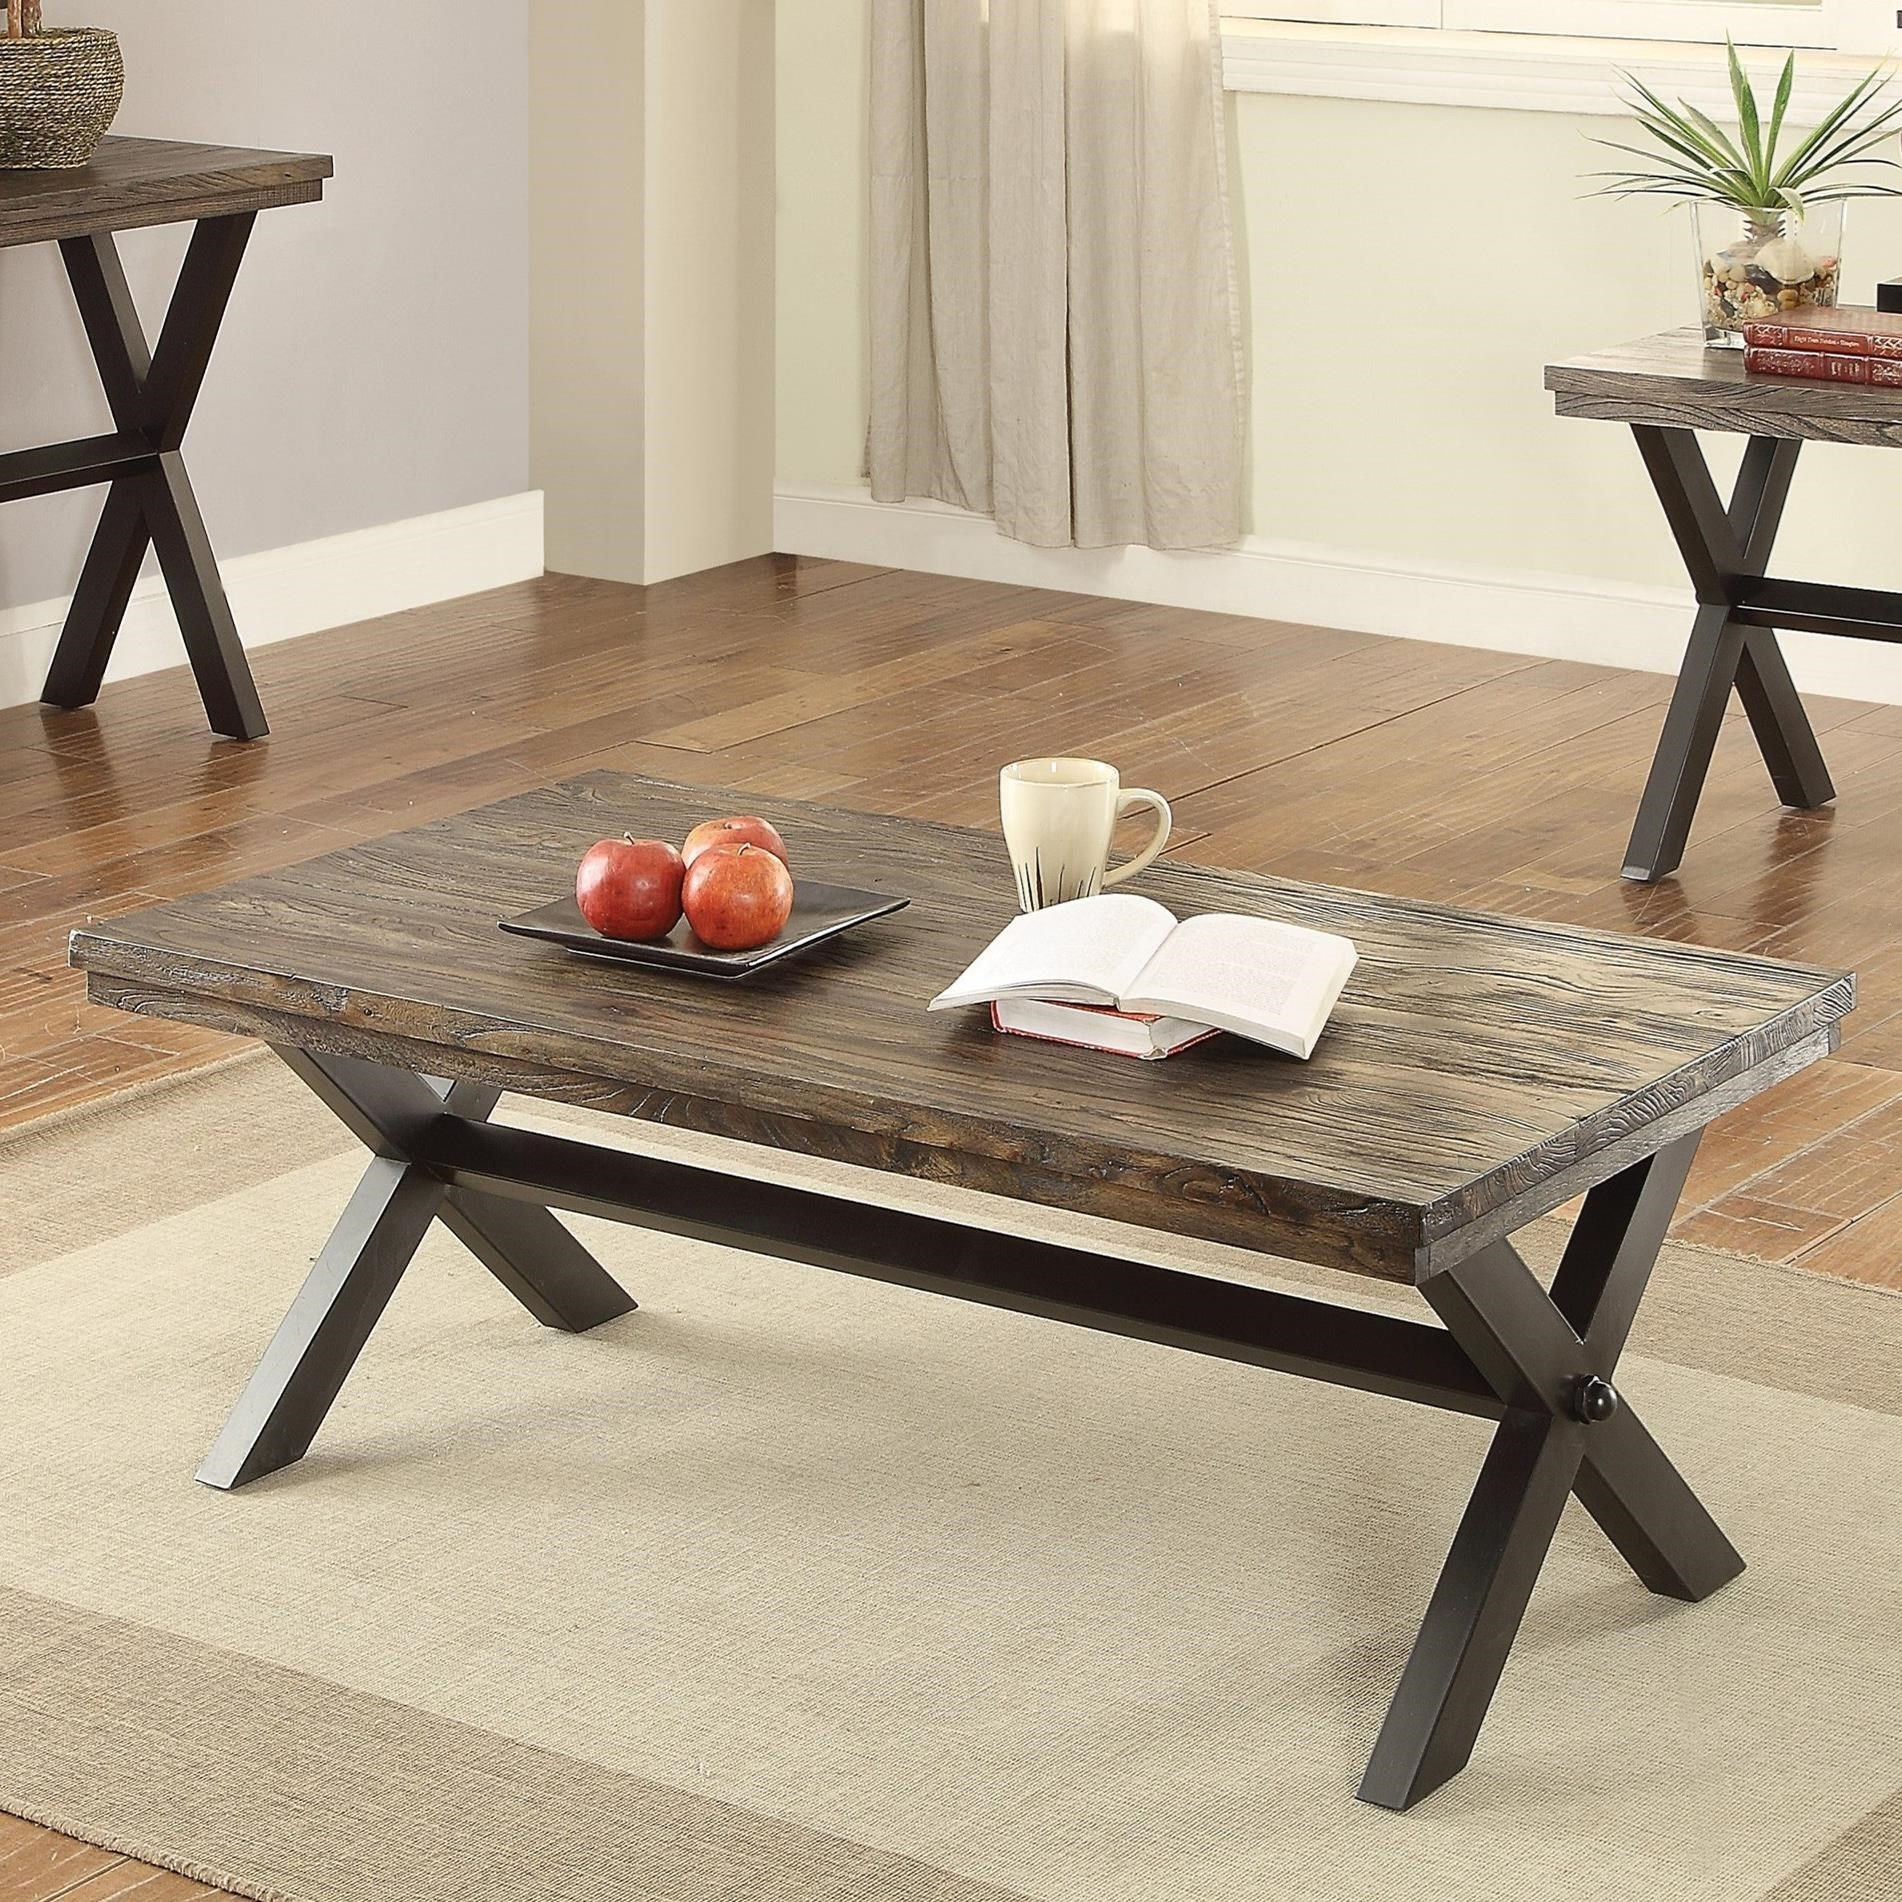 705278 romilly rustic coffee table